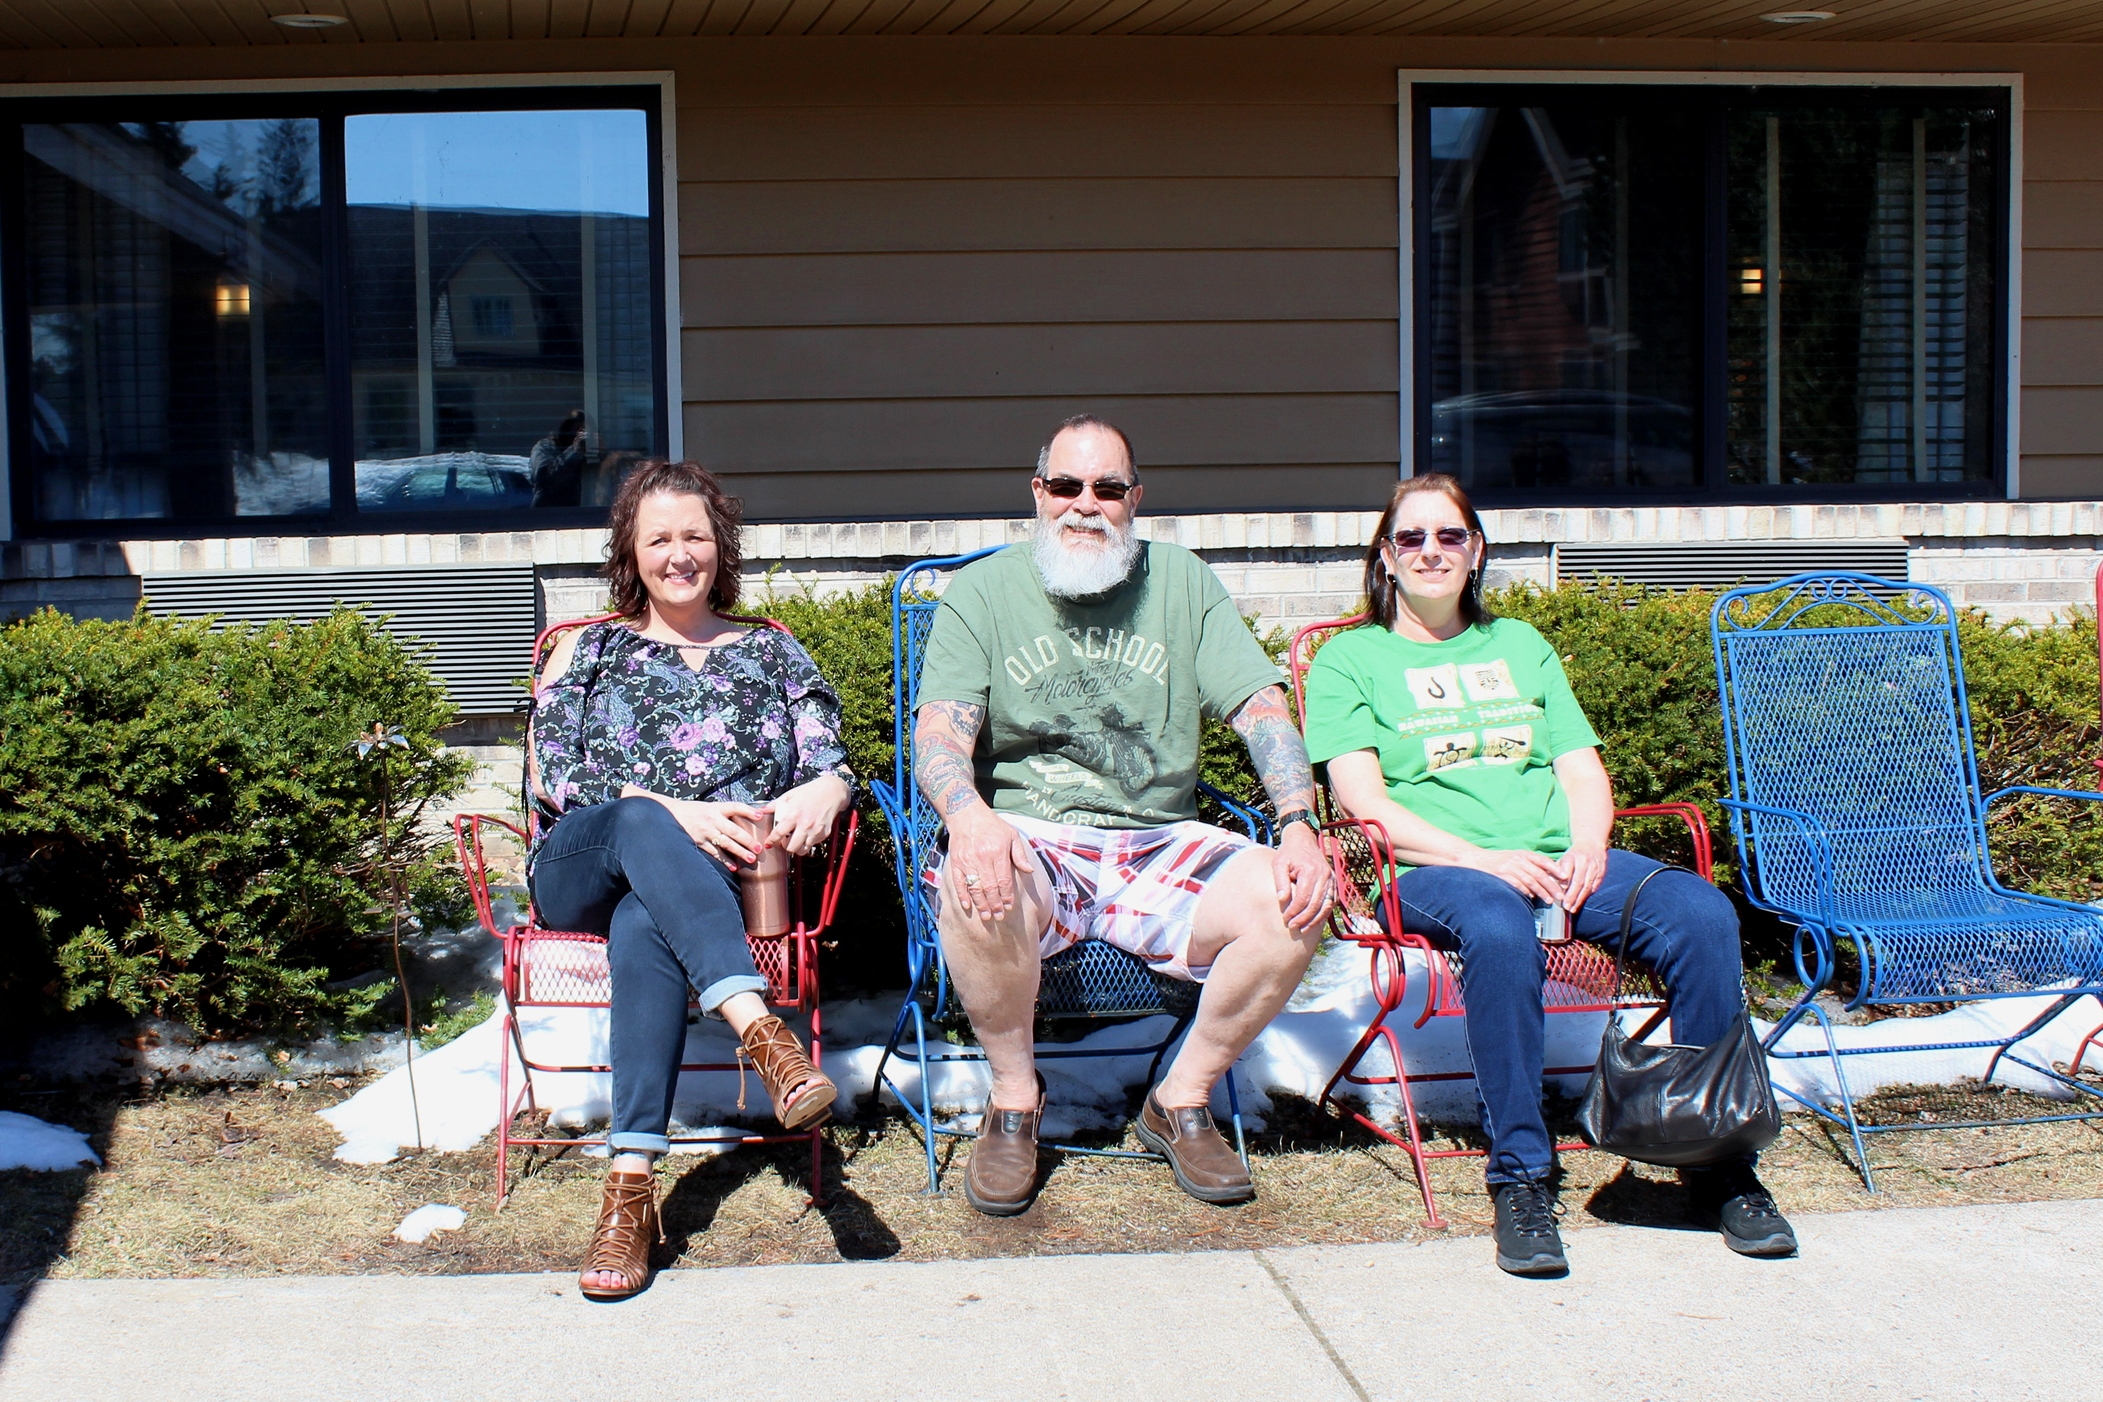 Christy, Wing and Laurie, visiting from Madison and Green Bay, enjoy the sunshine in Minocqua. Kim Johnson photo